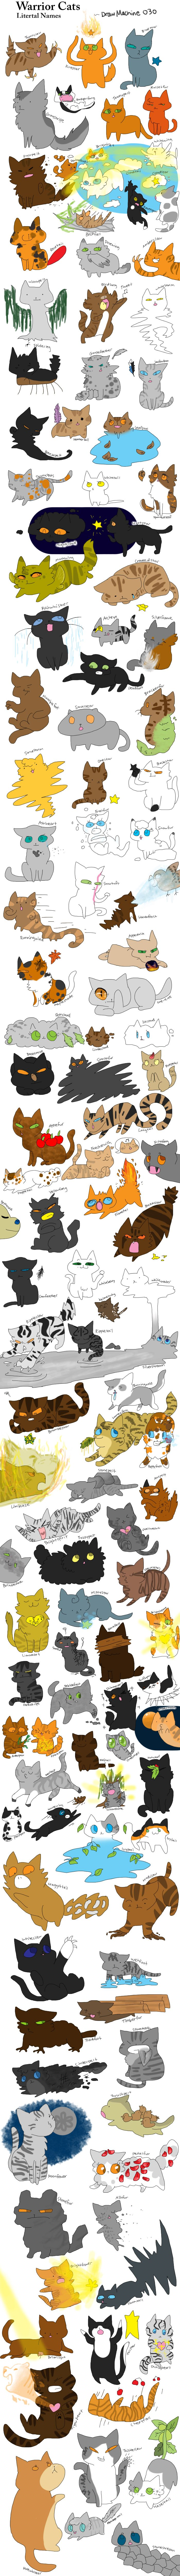 "ERin Hunter logic* sorry Oh and I don't normally say this but anyone who claims Sandstorm ""stole"" Firestar from Spootedleaf/Cinderpelt- I'll just assume that they're that immature part of the fando..."